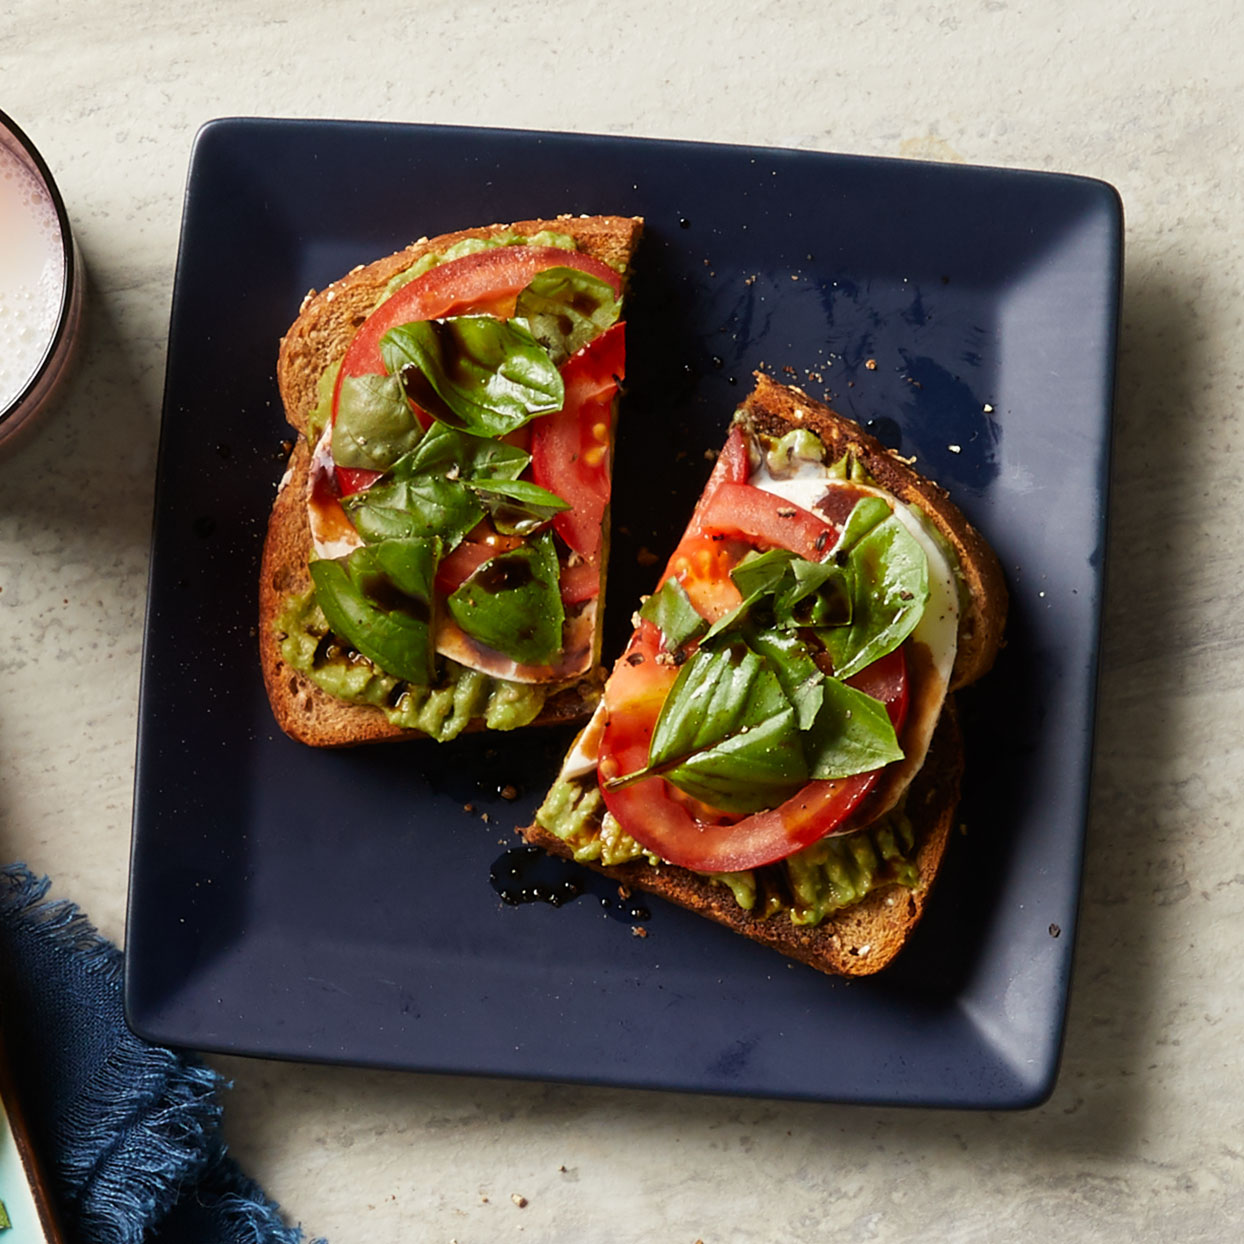 Tomatoes, mozzarella, and basil--the building blocks of caprese salad--lend a creative twist to a standard avocado toast recipe. Source: Diabetic Living Magazine, Winter 2020